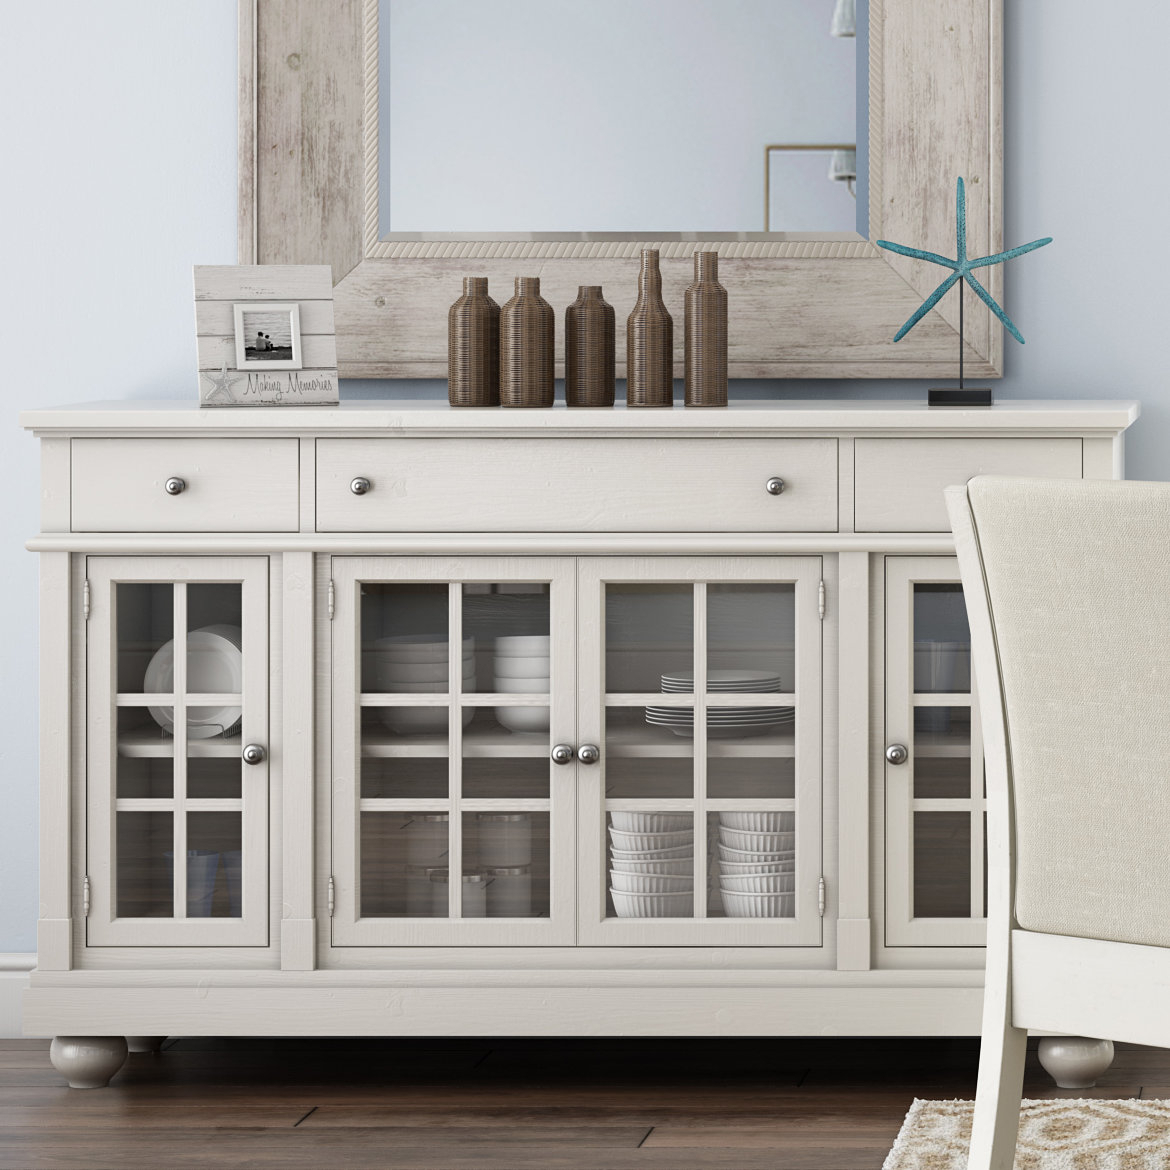 Farmhouse & Rustic Sideboards & Buffets | Birch Lane Intended For Wooden Buffets With Two Side Door Storage Cabinets And Stemware Rack (View 23 of 30)